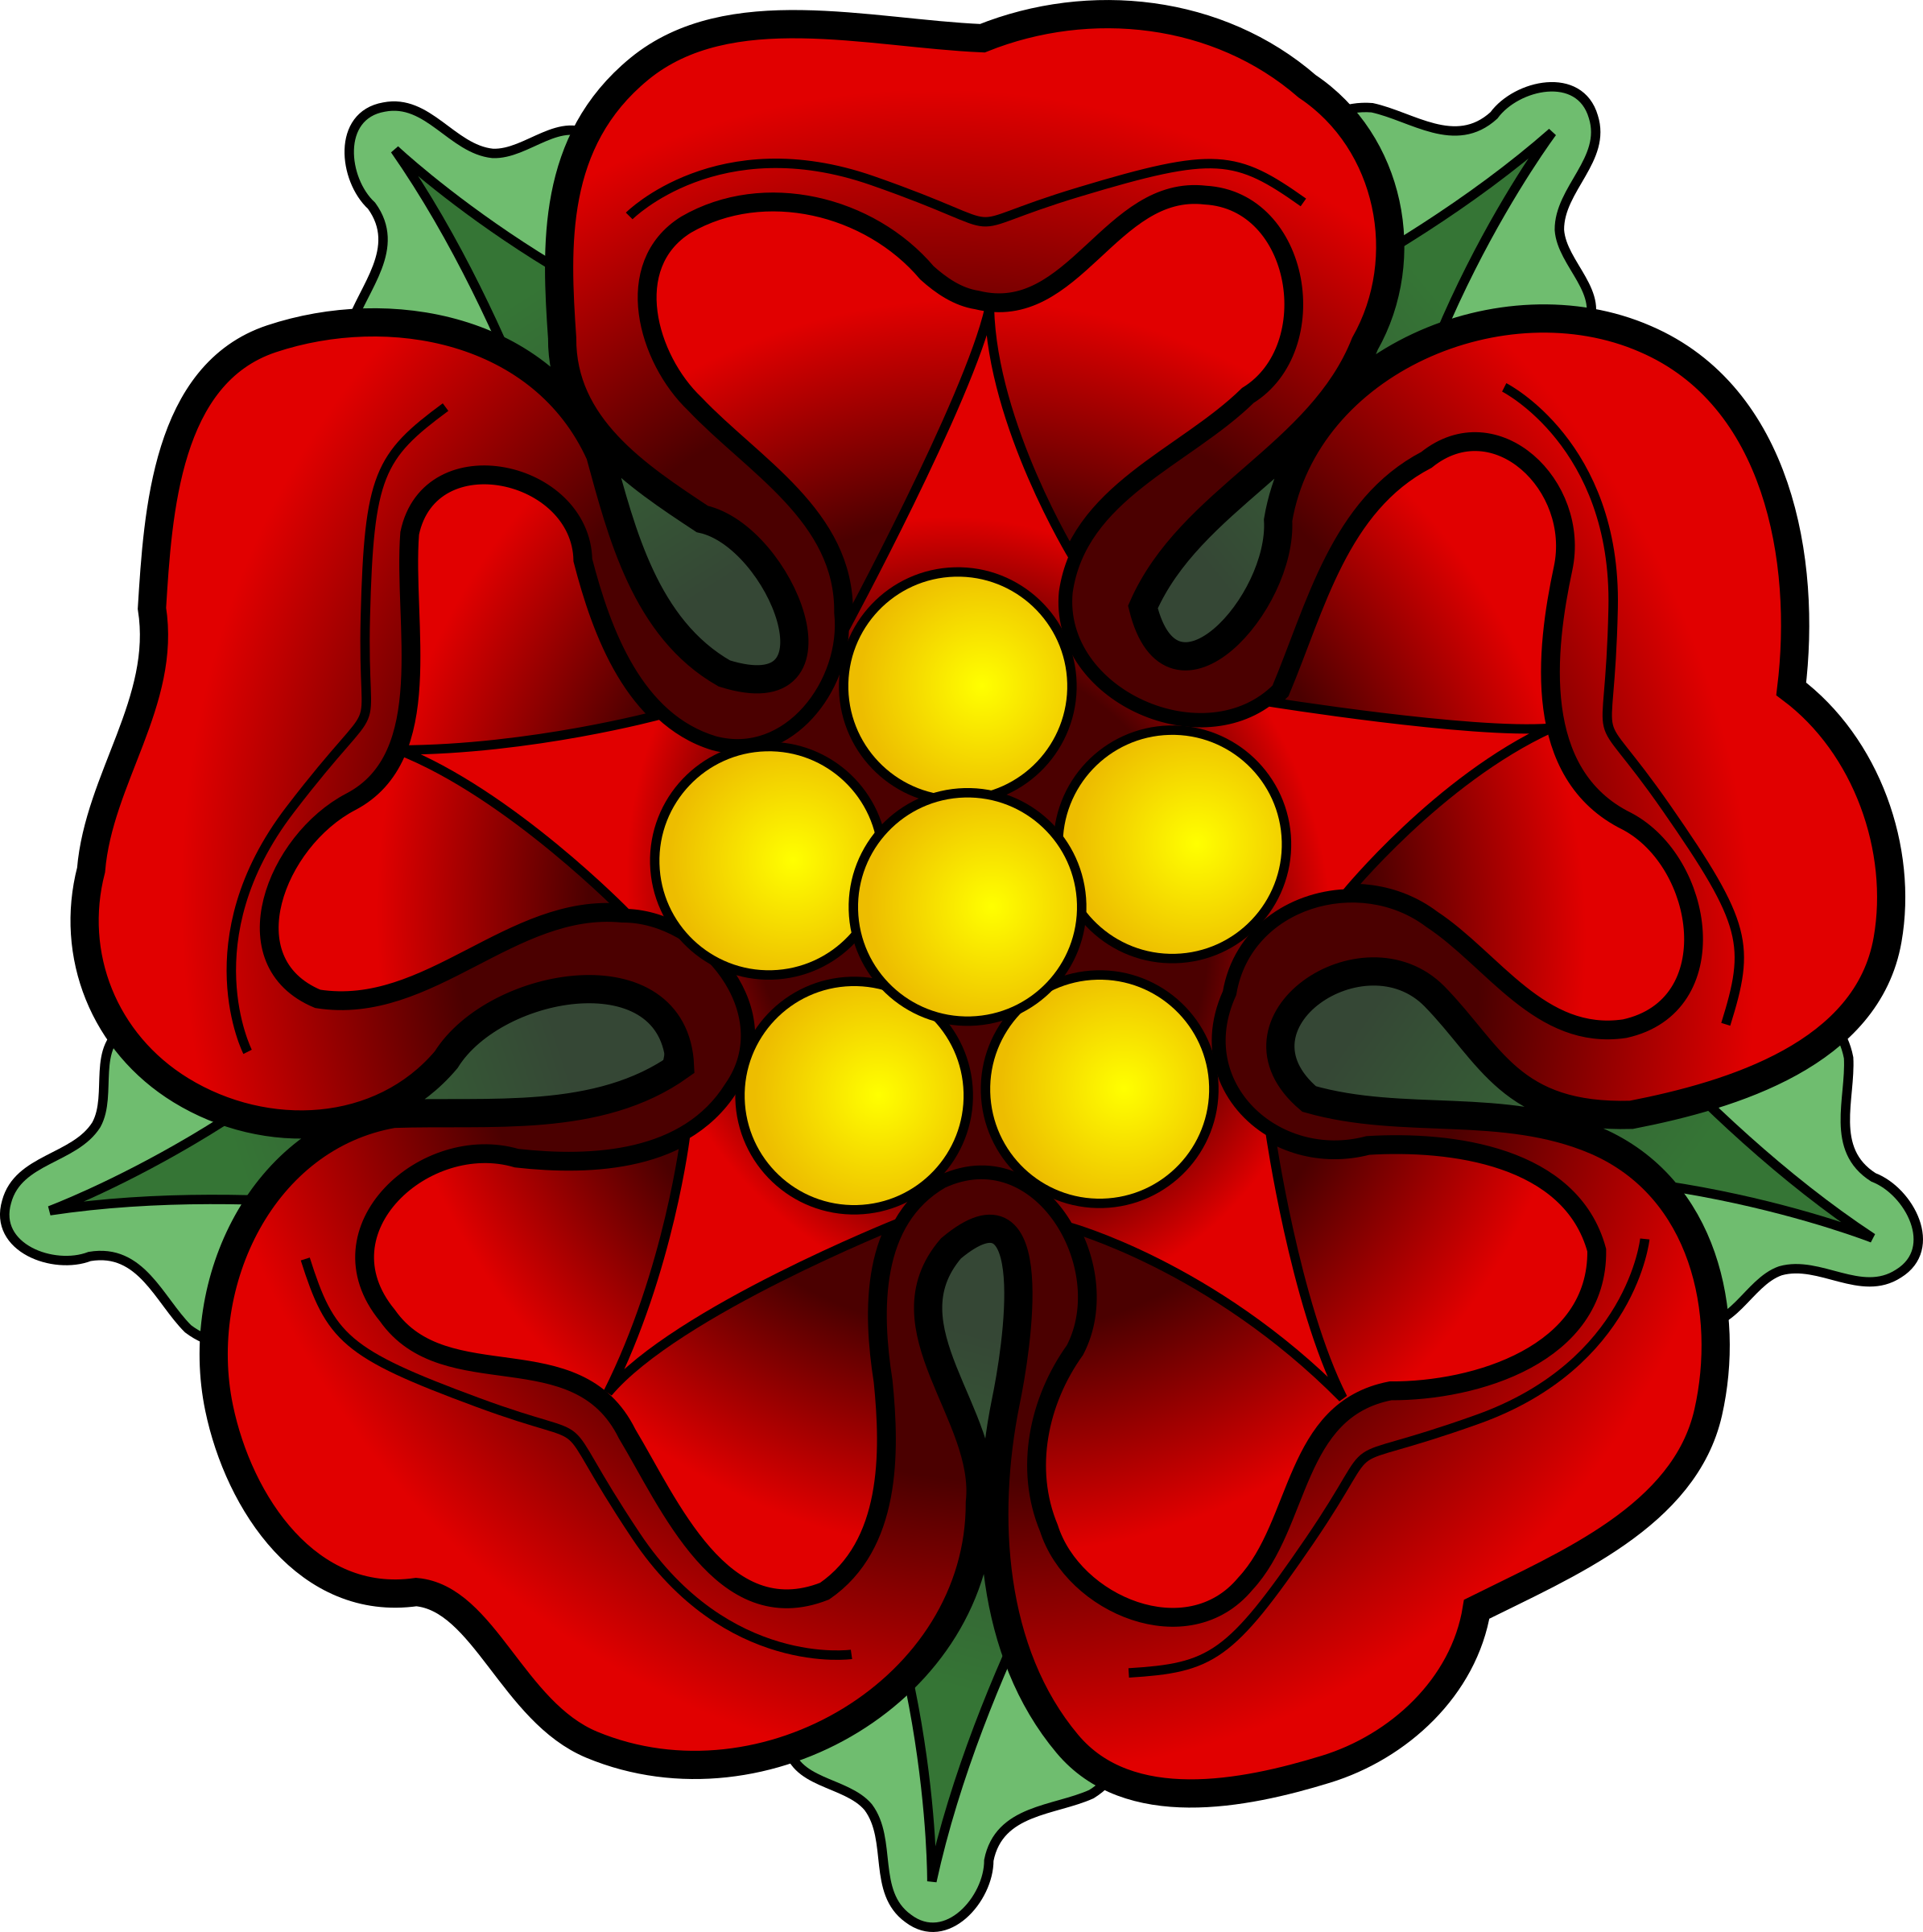 Mexican flower png. Clipart heraldic rose big